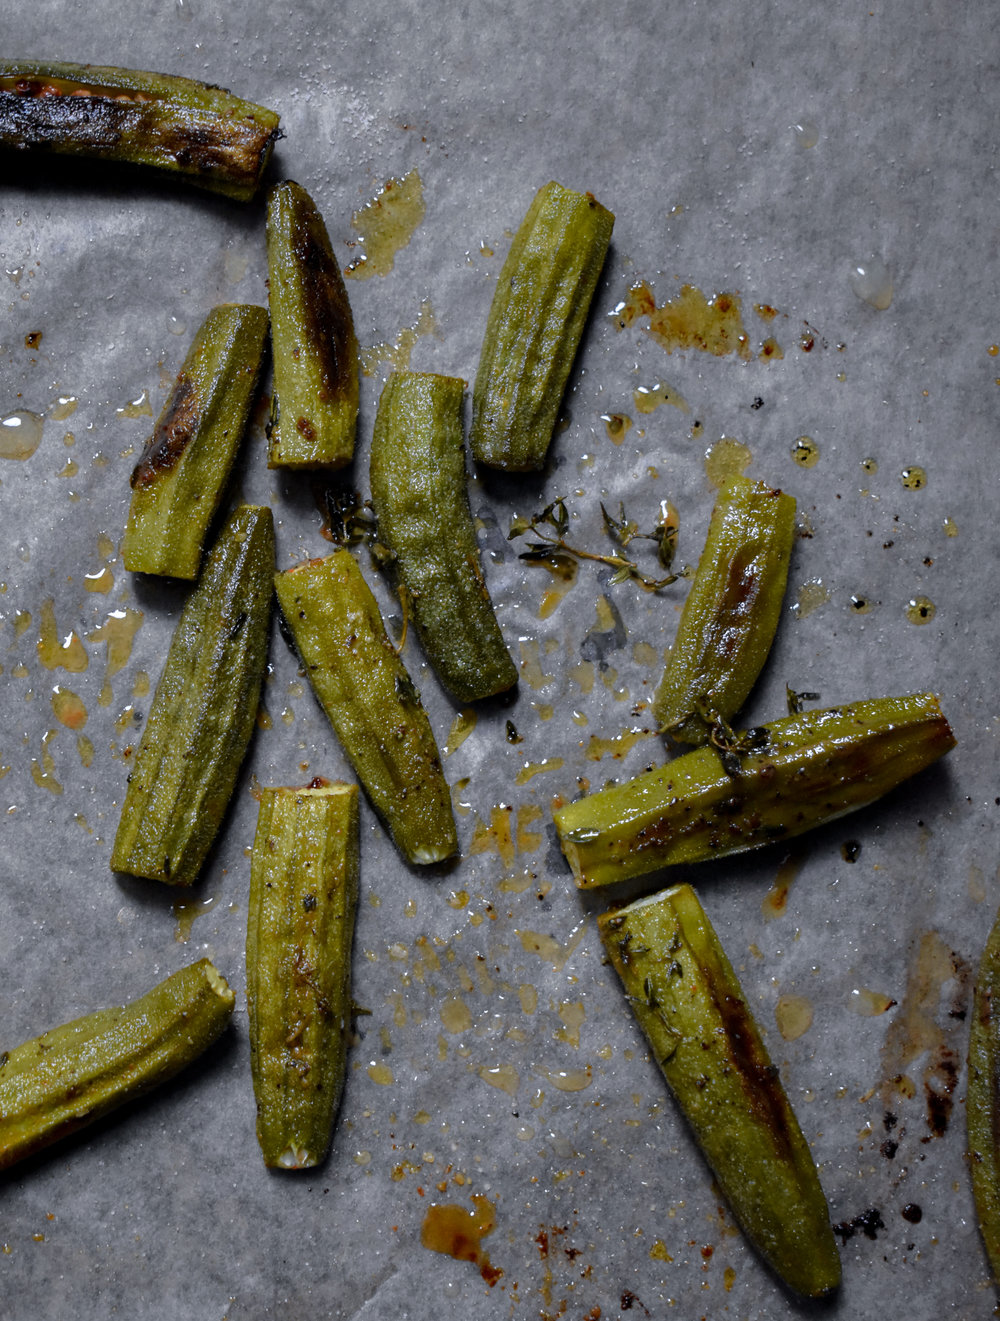 6. To finish, mix the okra with oil/spices and other ingredients. Add to baking sheet and bake for 20-25 minutes until well roasted.